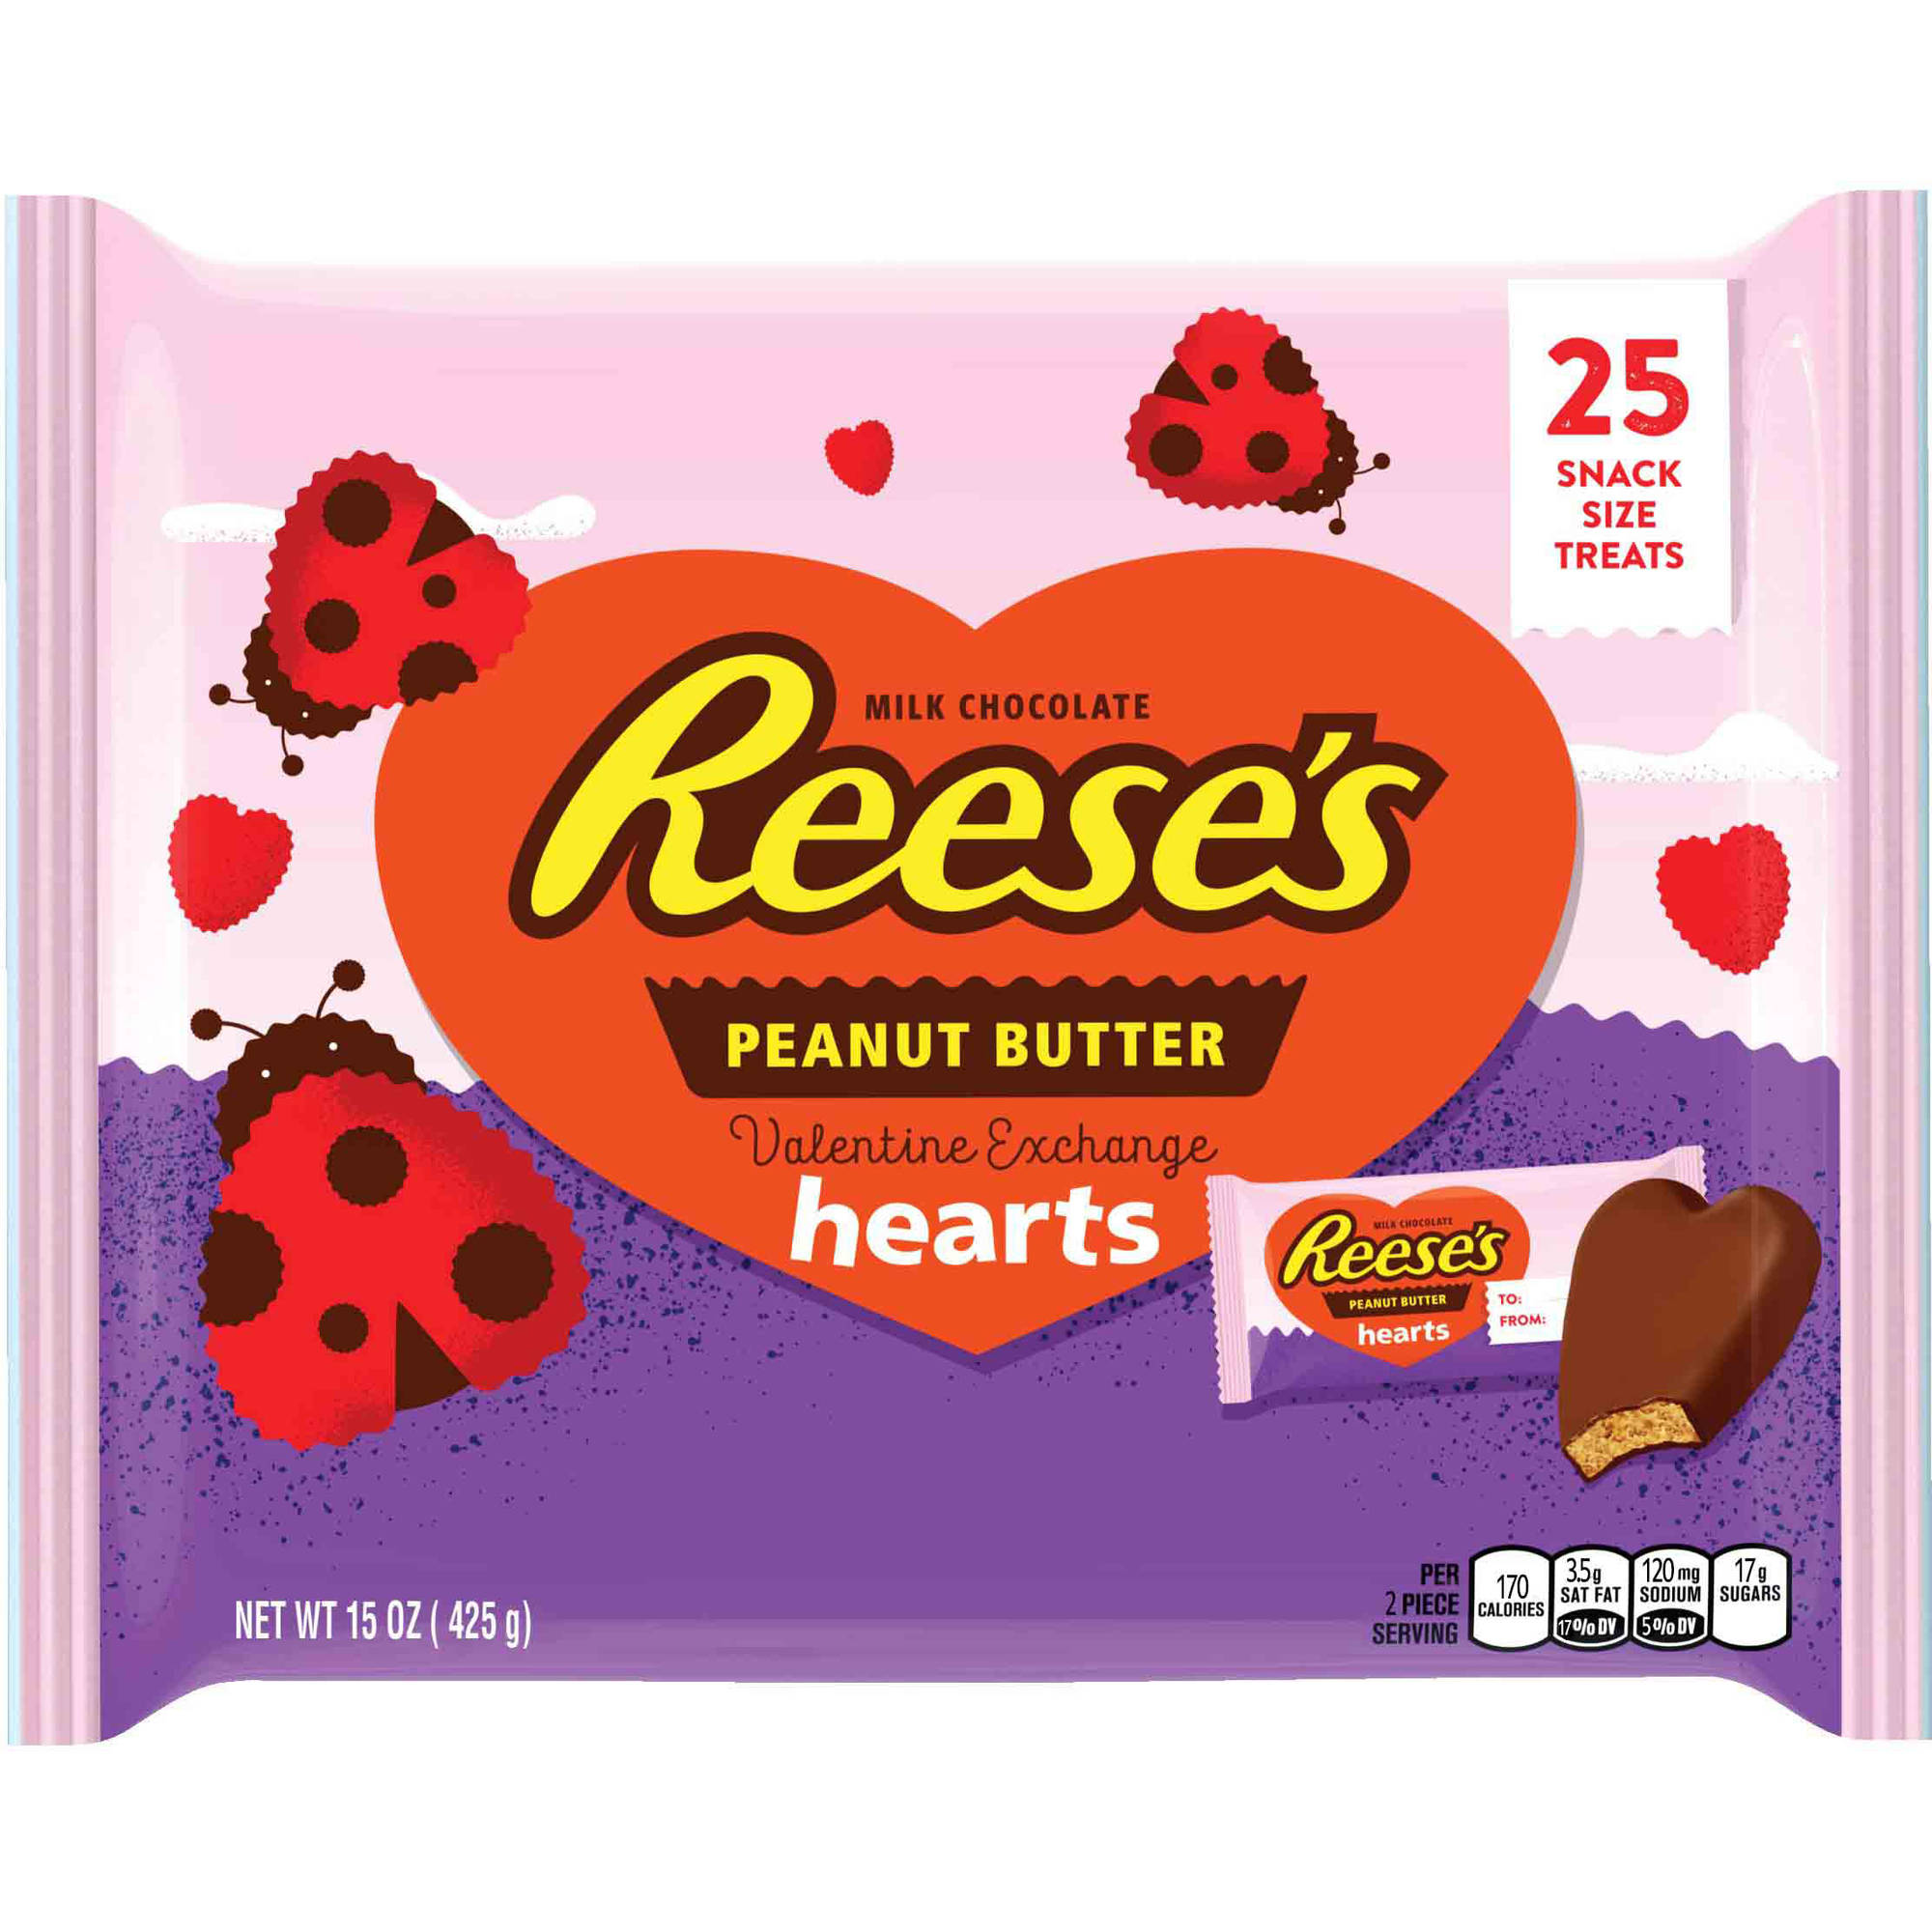 Reese's Valentine's Exchange Peanut Butter Hearts Candy, 25 ct, 15 oz